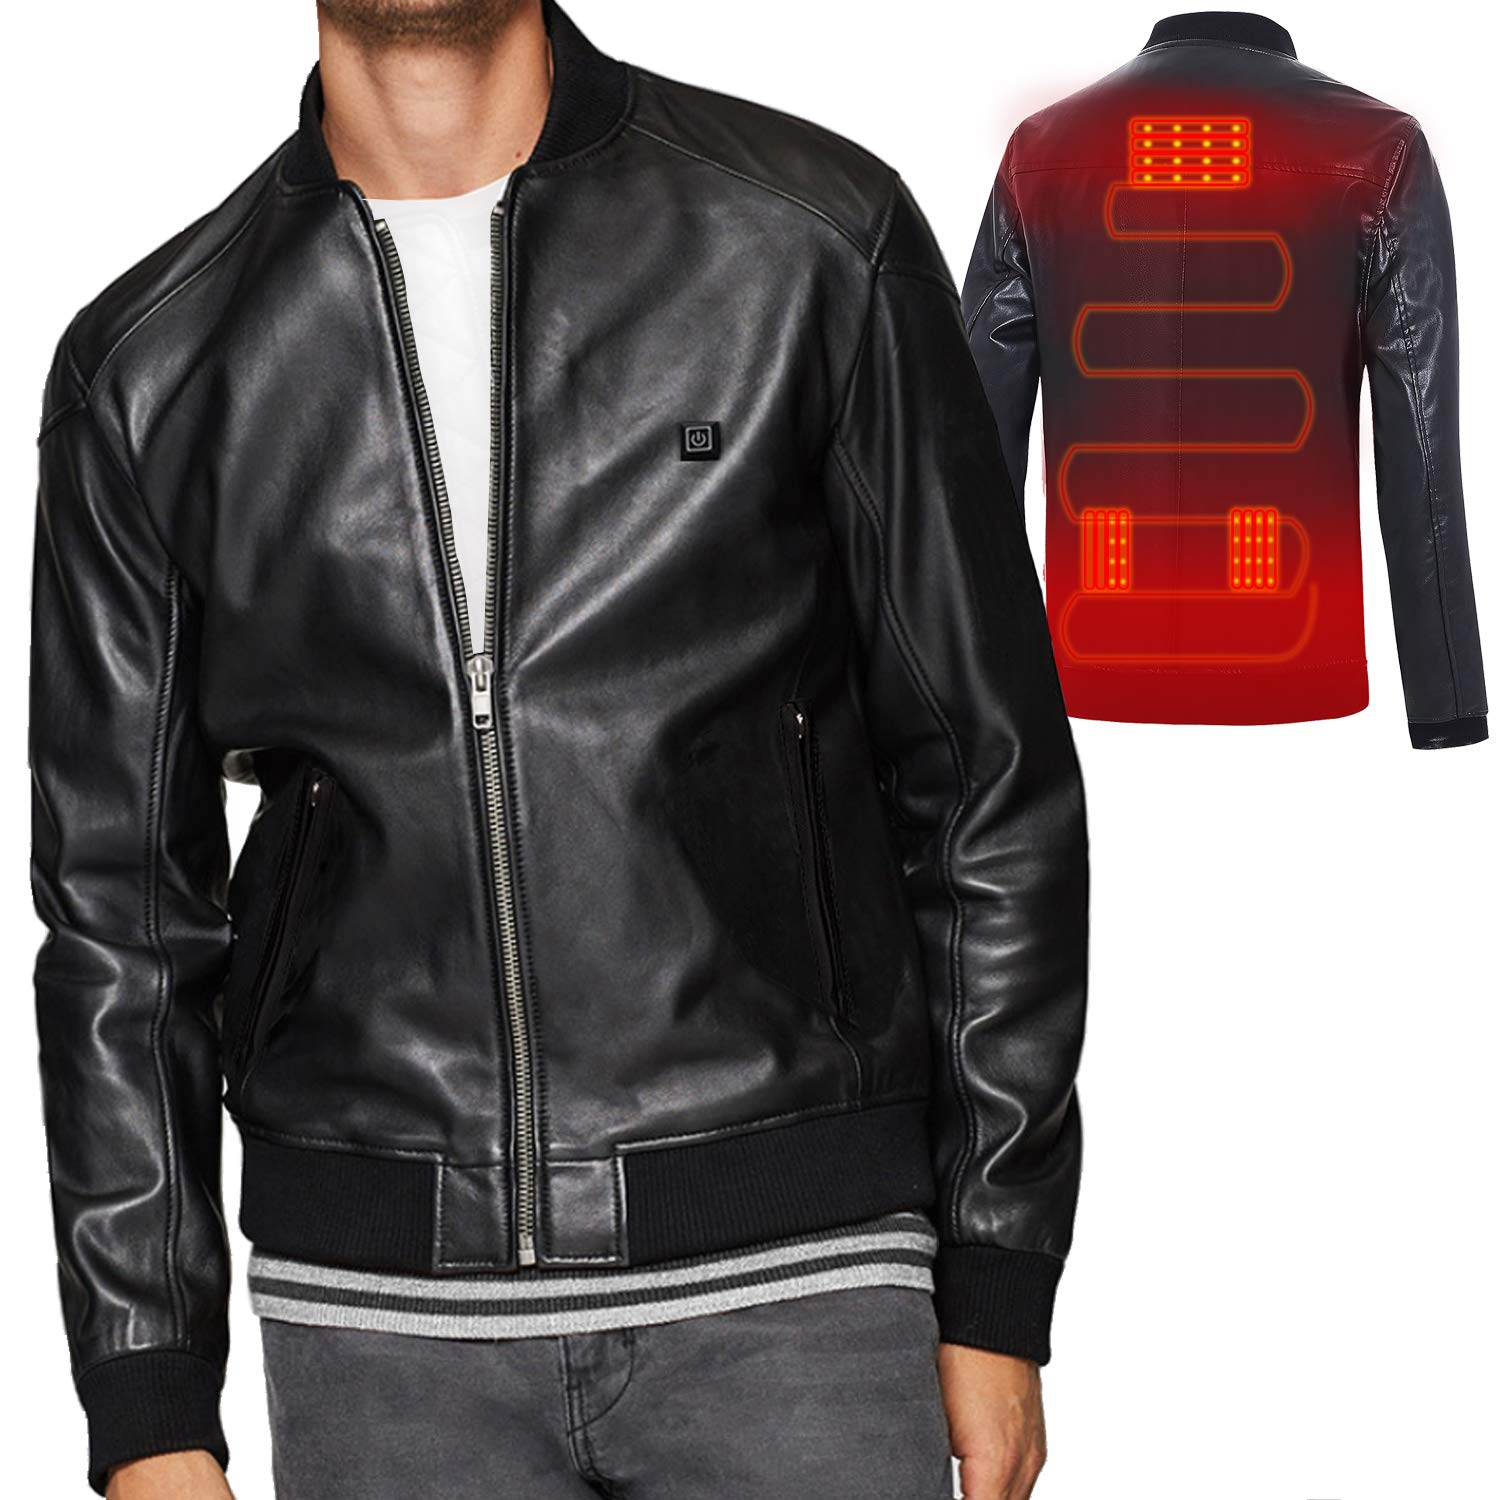 Heating Clothes Amazon Com >> Vinmori Heated Jacket Leather Motorcycle Jacket Usb Heated Clothing No Battery